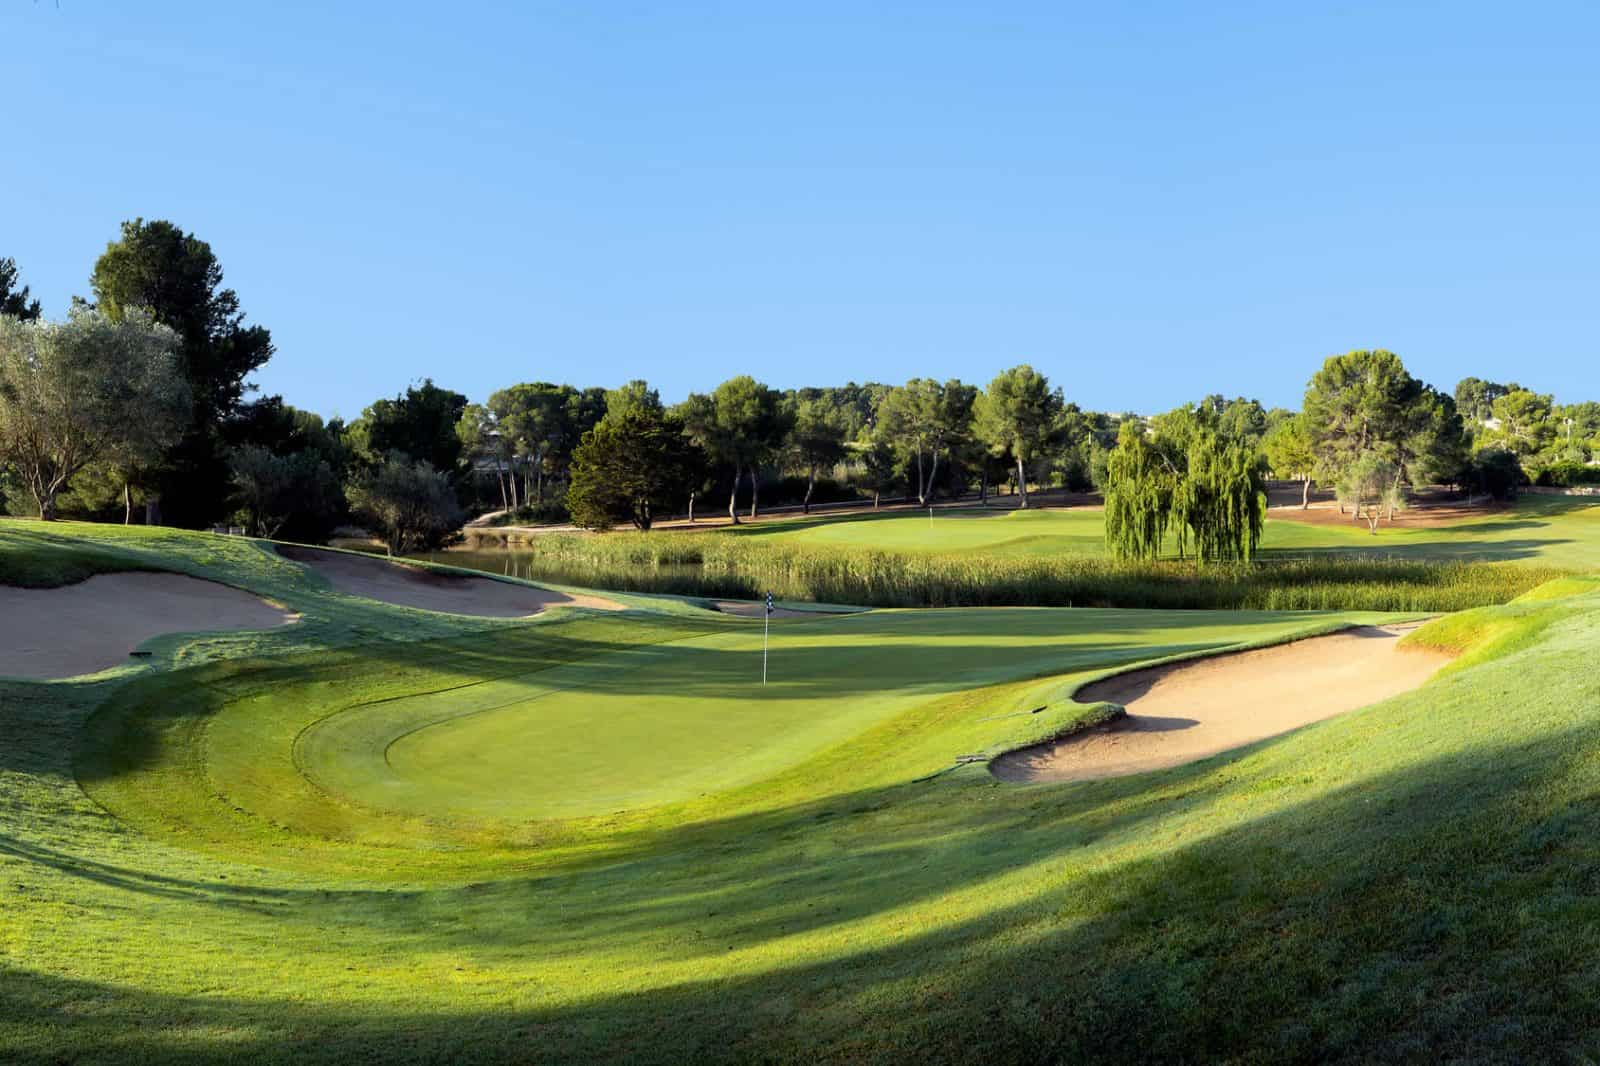 Calendario - Club de Golf El Bosque